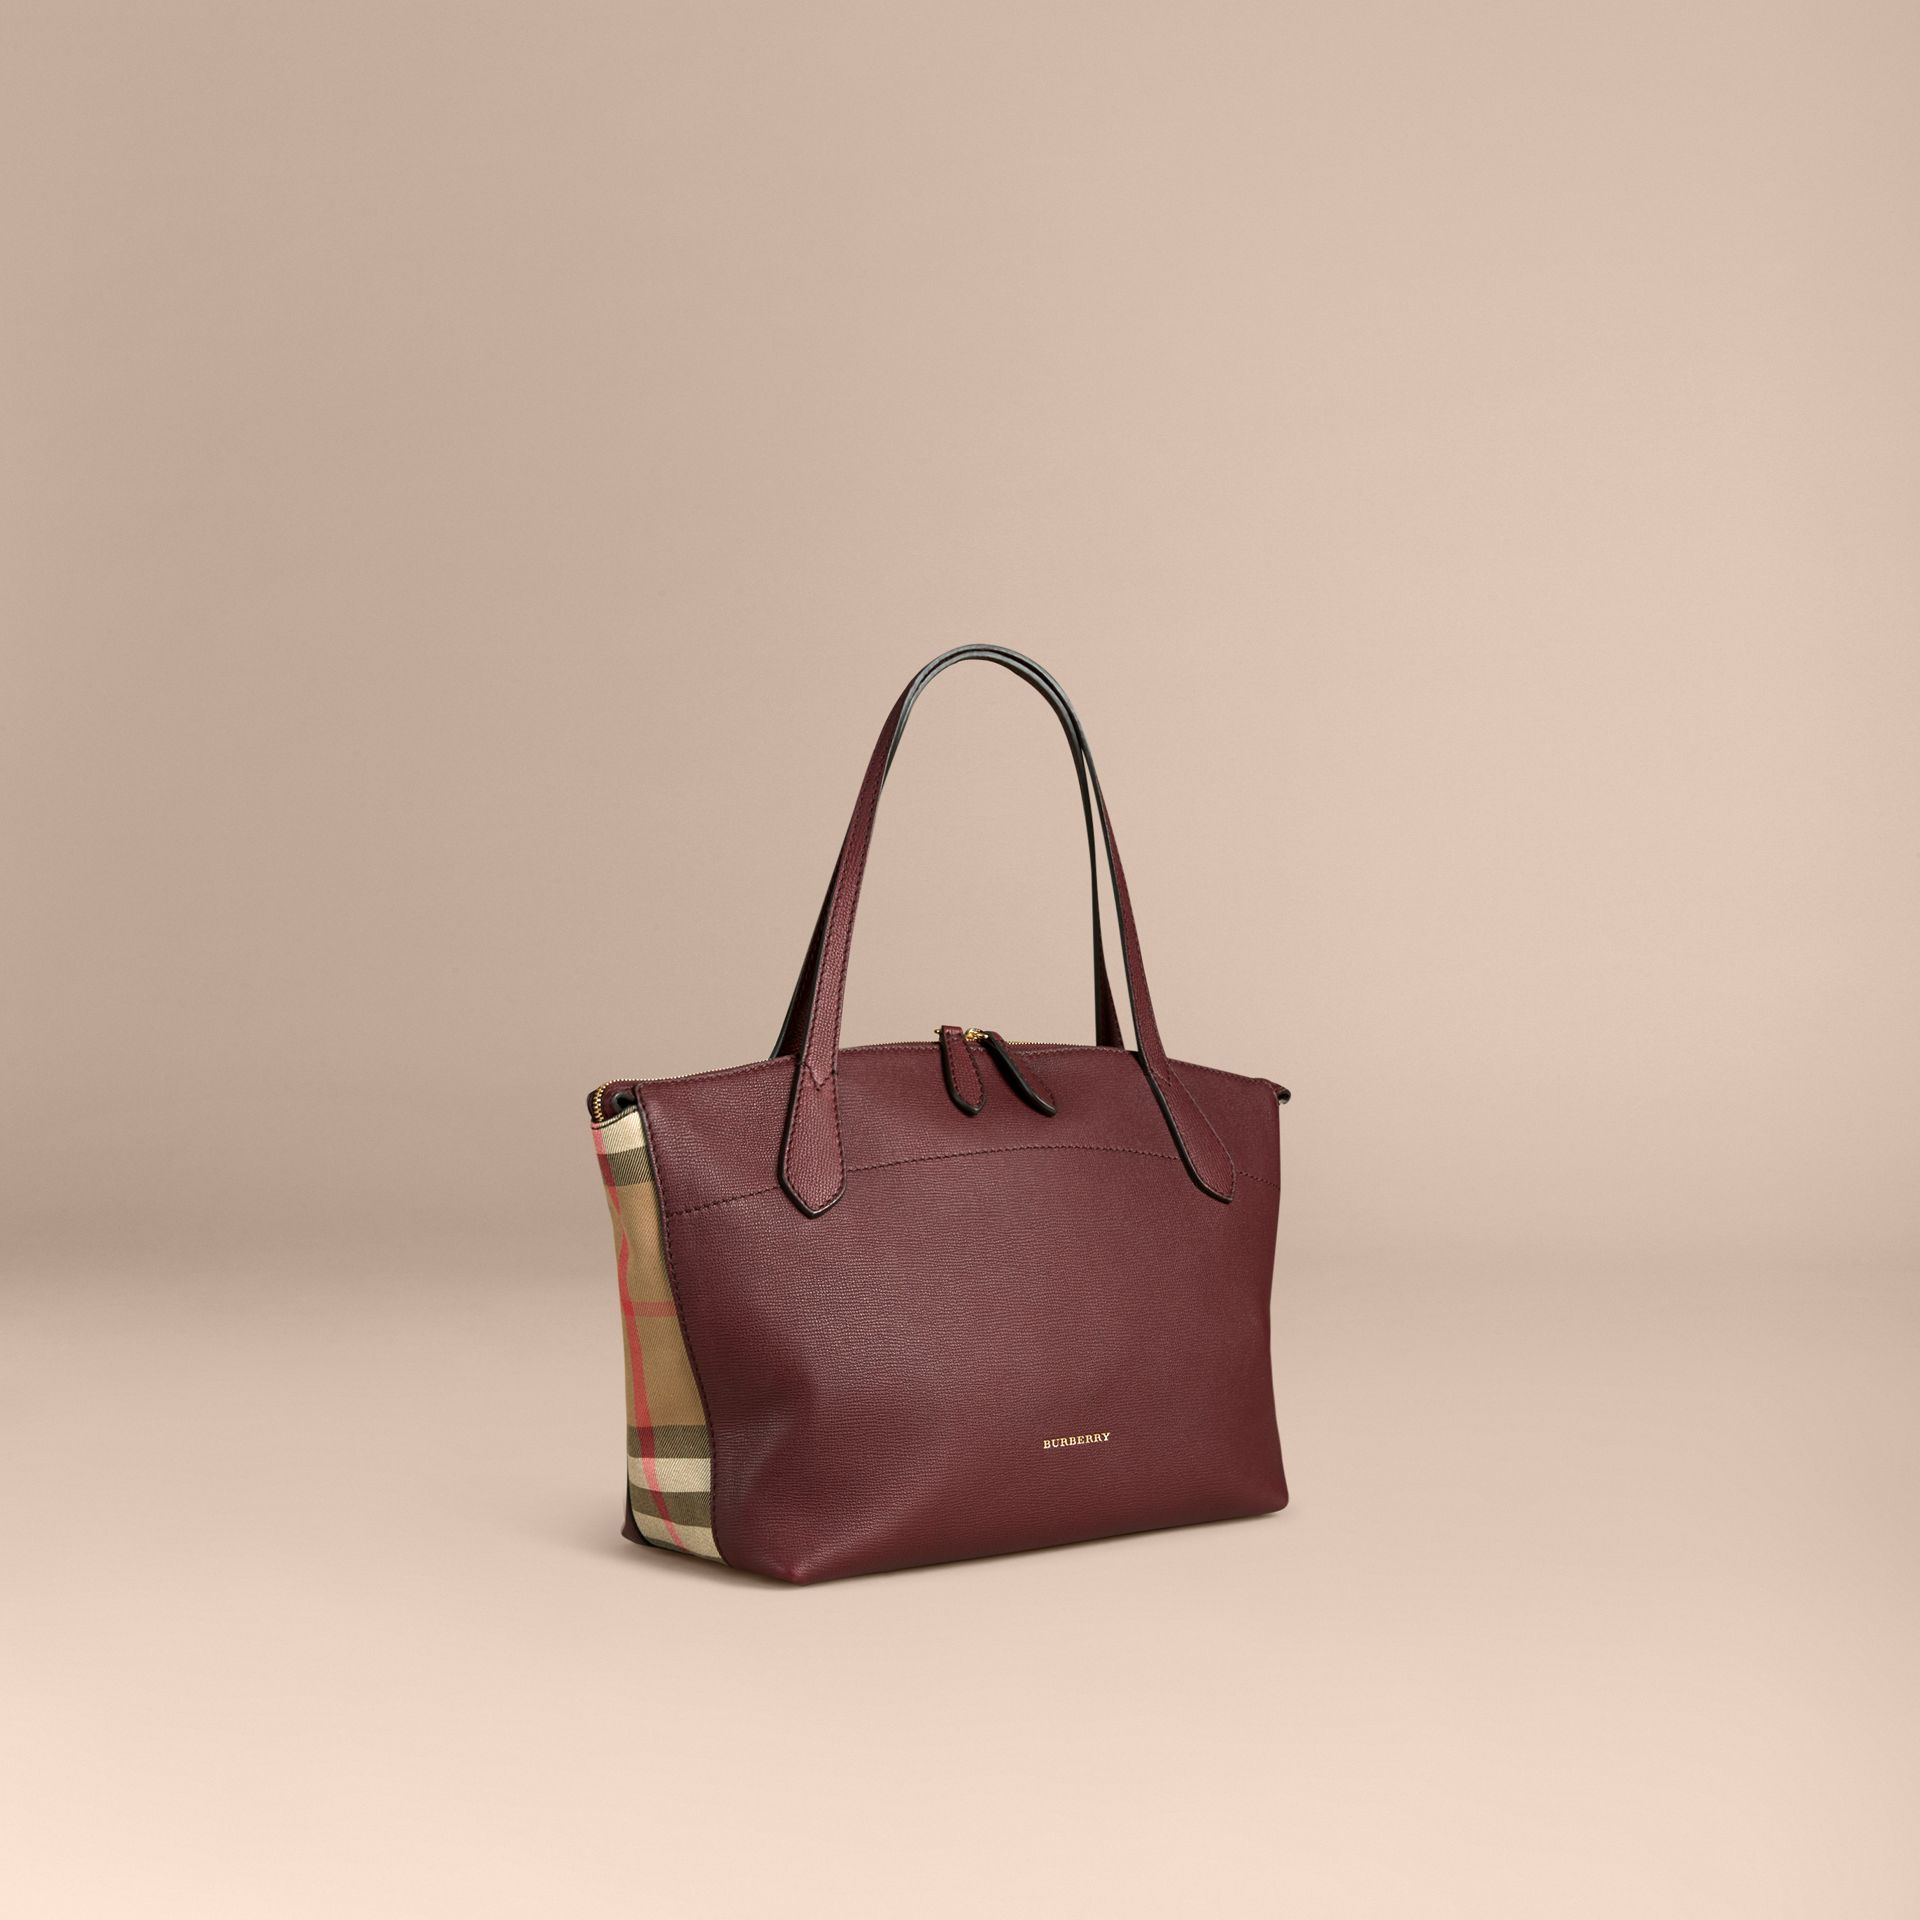 Rouge acajou Sac tote medium en cuir et coton House check Rouge Acajou - photo de la galerie 1